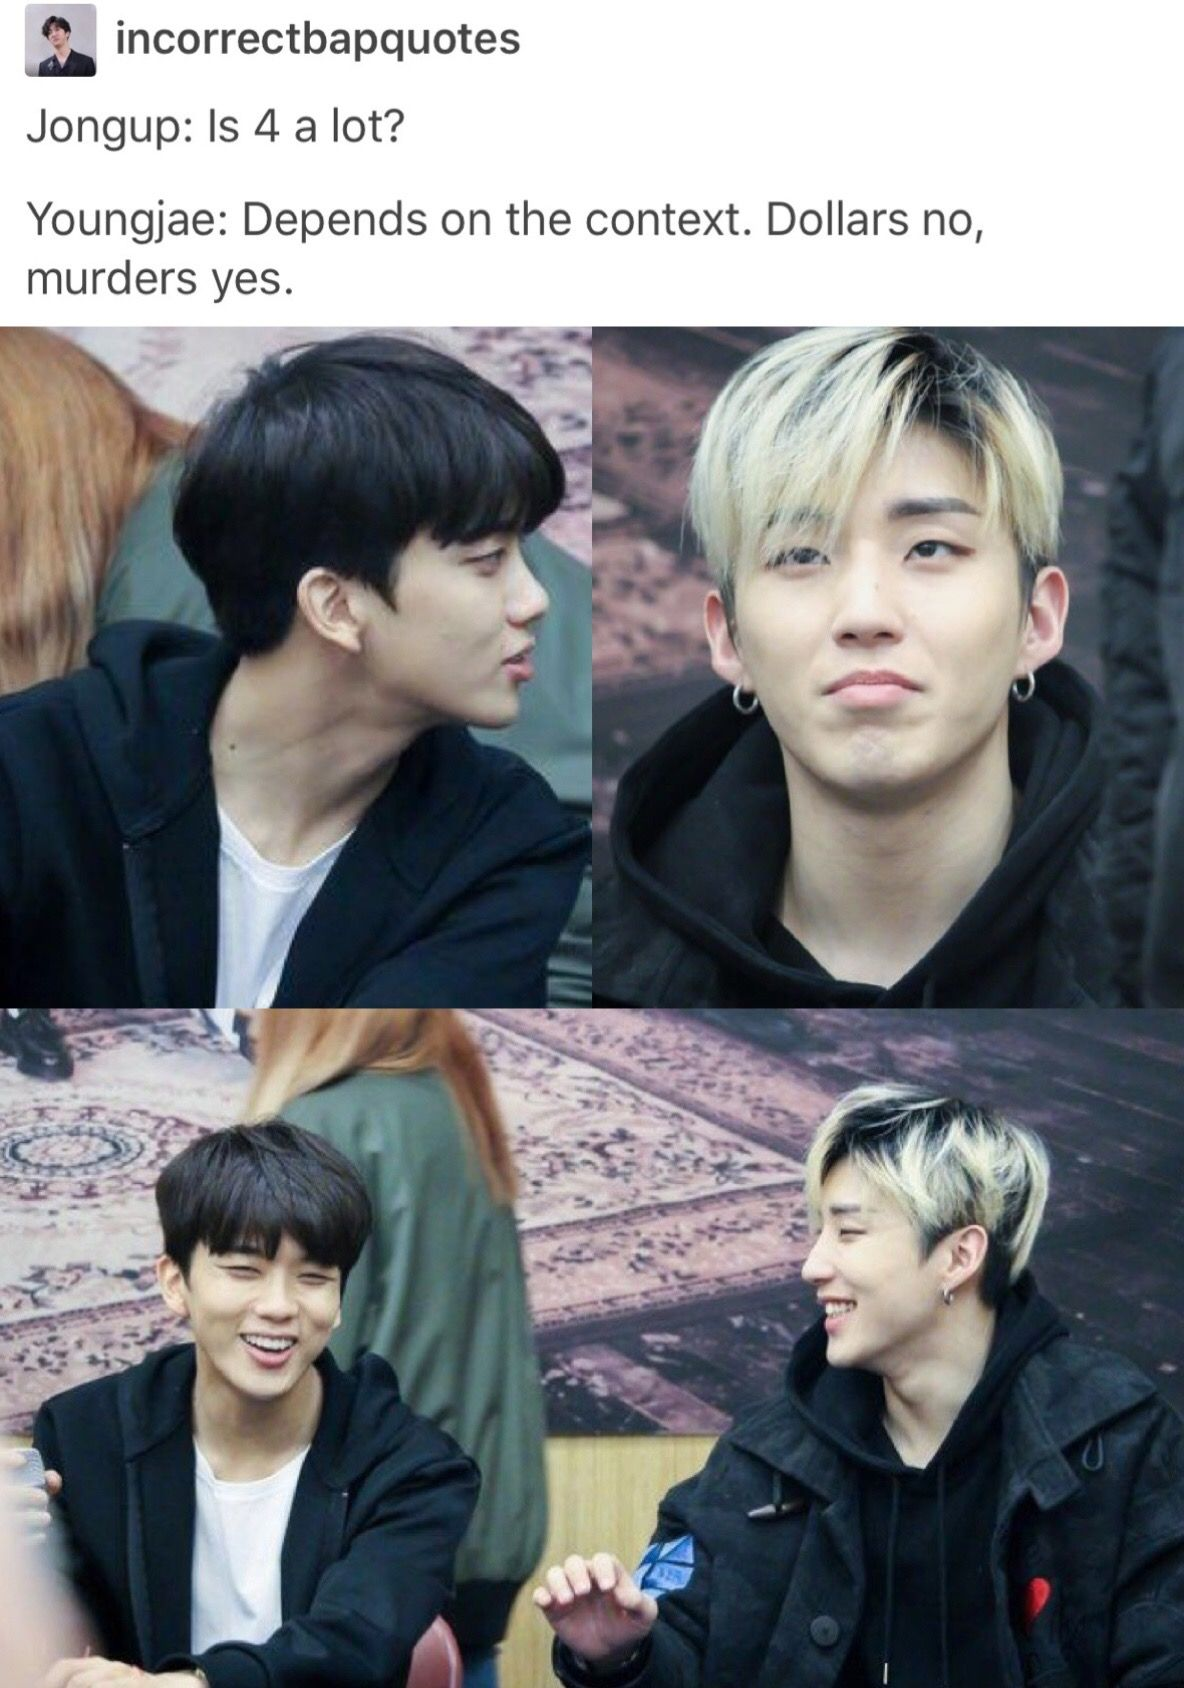 Step cutting hairstyle boy bap  jongup and youngjae  kpop humor gifs info  pinterest